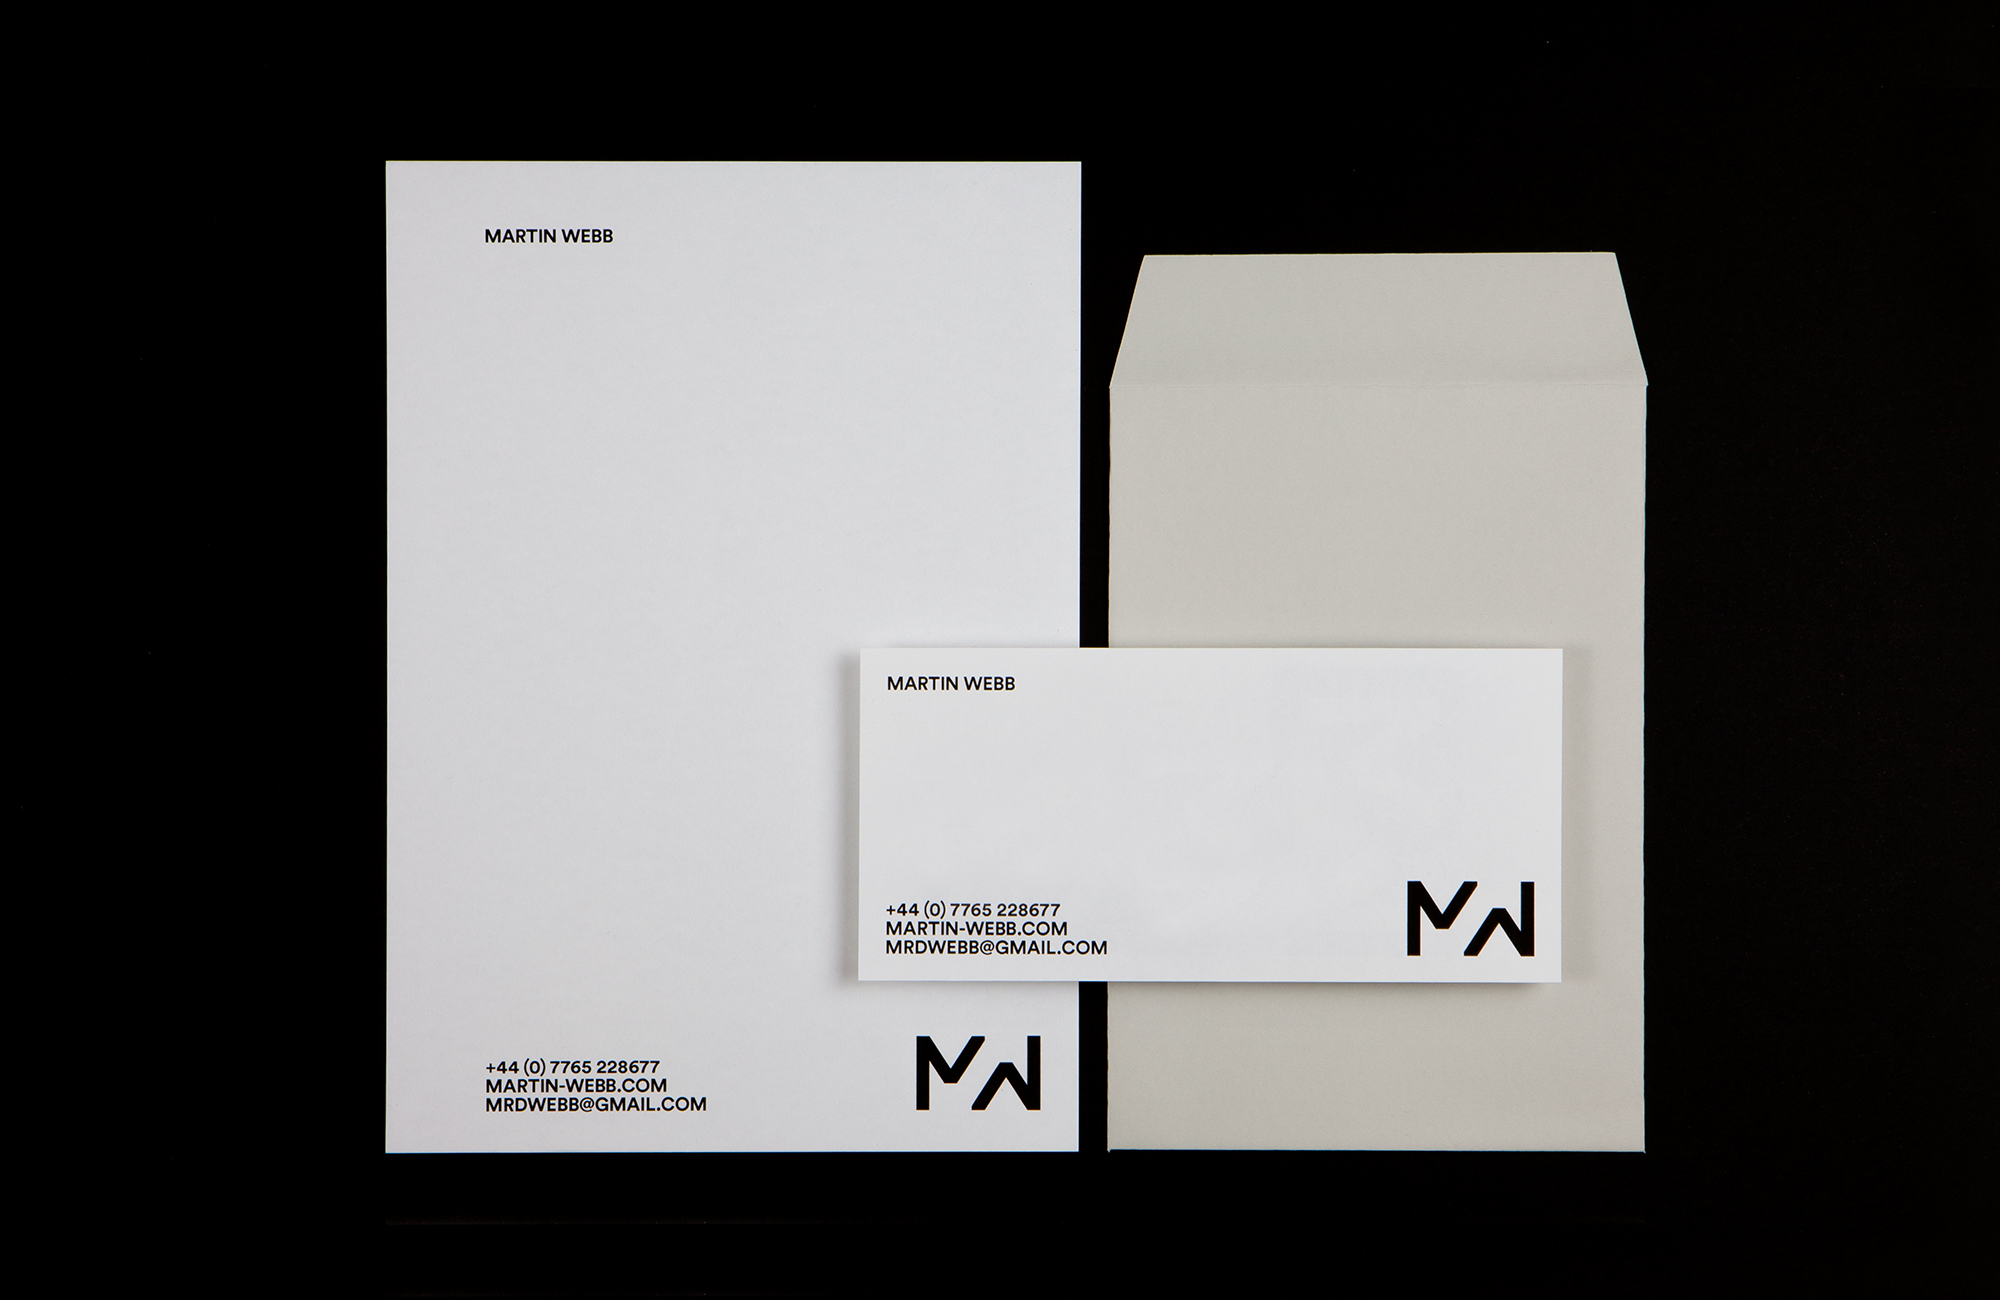 All Works Co._Graphic_Design_Studio_London_MartinWebb_Identity_Print_Stationery_Letterhead&Complimentslips_01